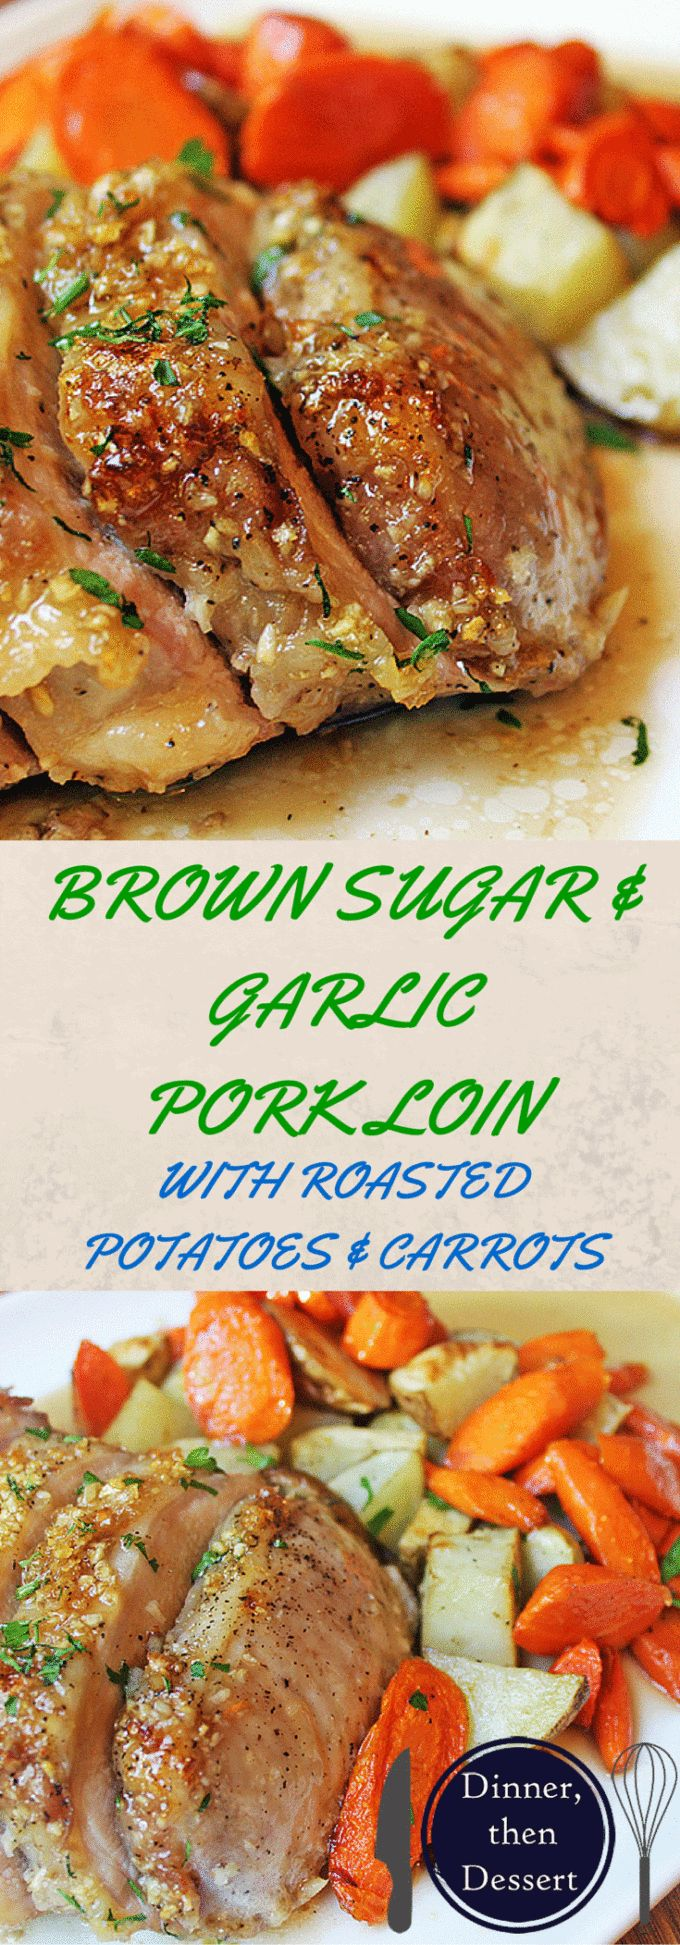 An easy meal, ready to roast in just a few minutes. Sticky and sweet with a punch of garlic, this pork loin is sure to be a huge hit with your family. Serve it up with some roasted carrots and potatoes on the side for a healthy balanced meal that is ready start to finish in 45 minutes!